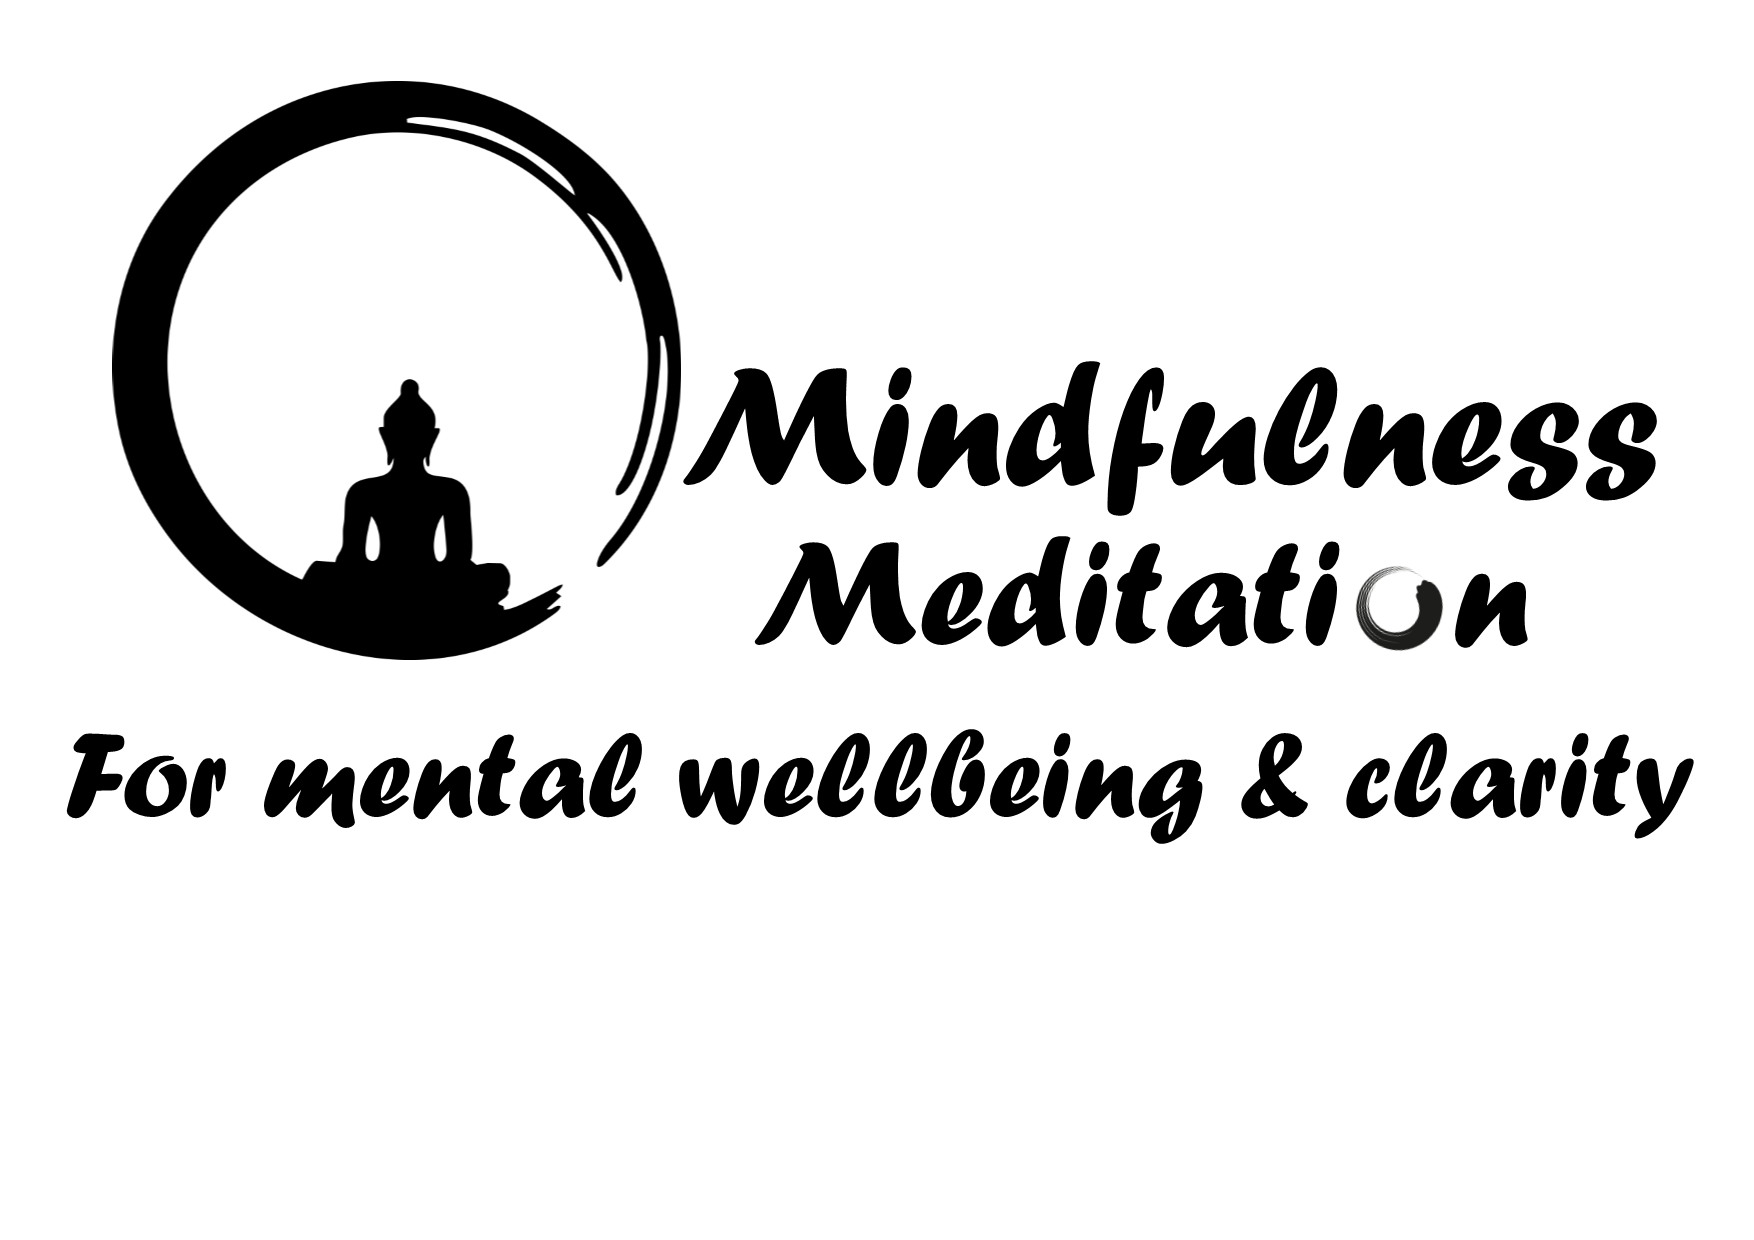 Mindfulness and Meditation (understanding our thoughts and reactions)